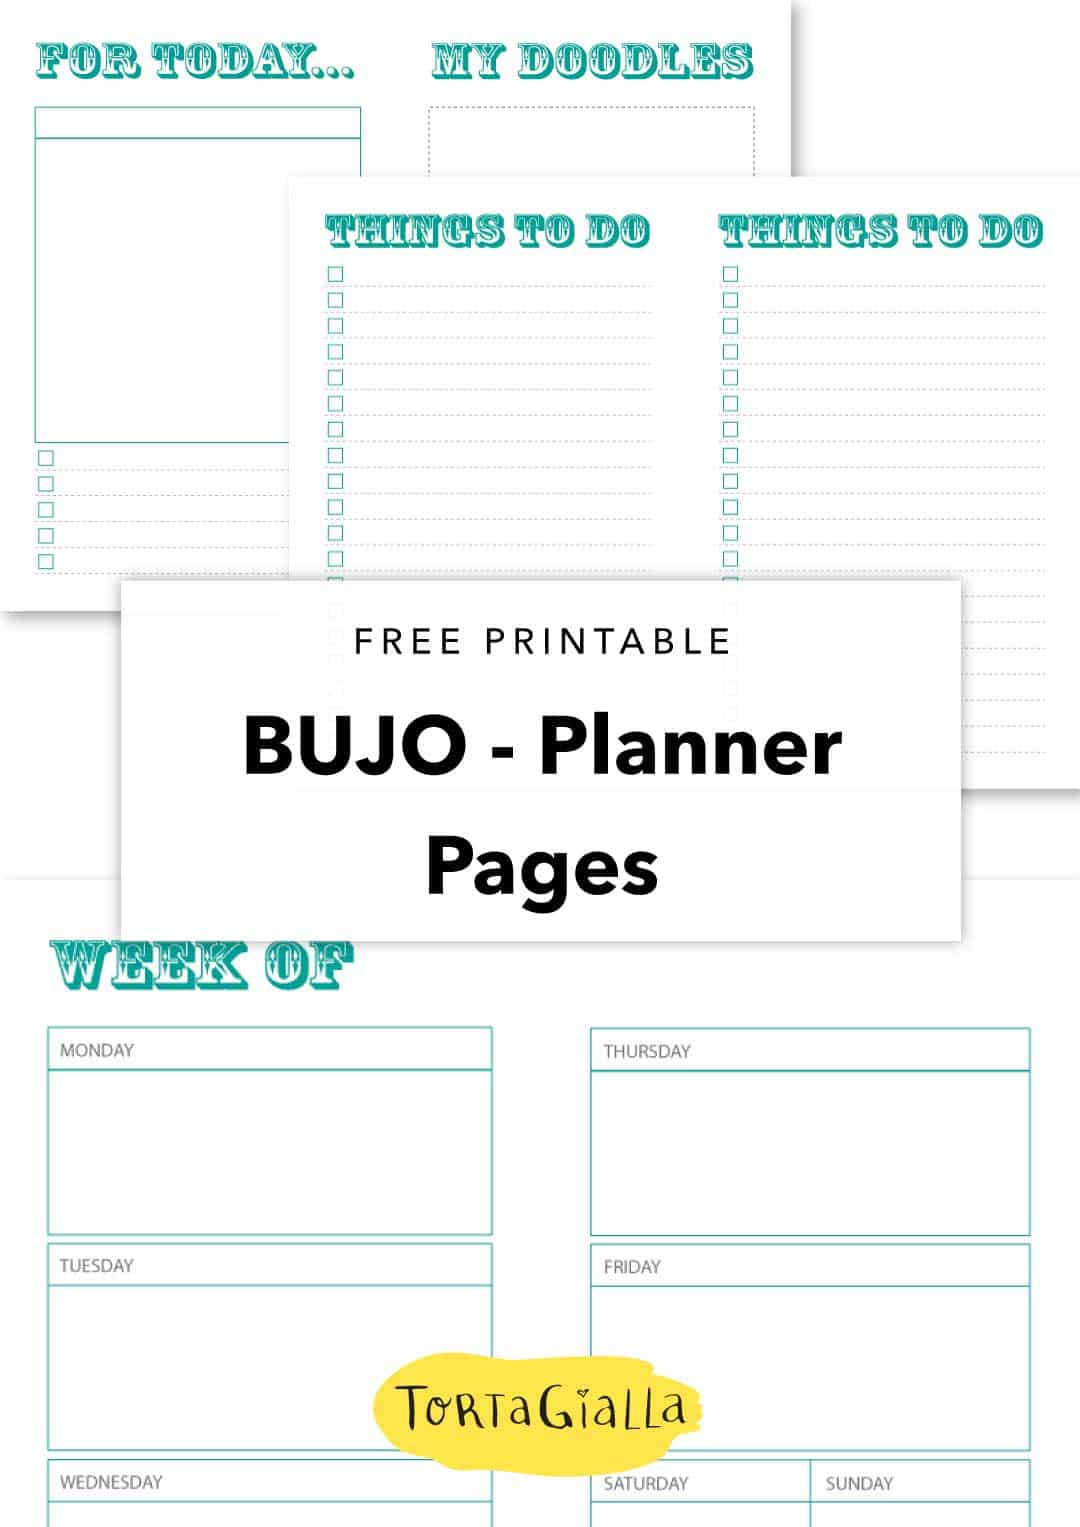 free printable - bujo planner pages